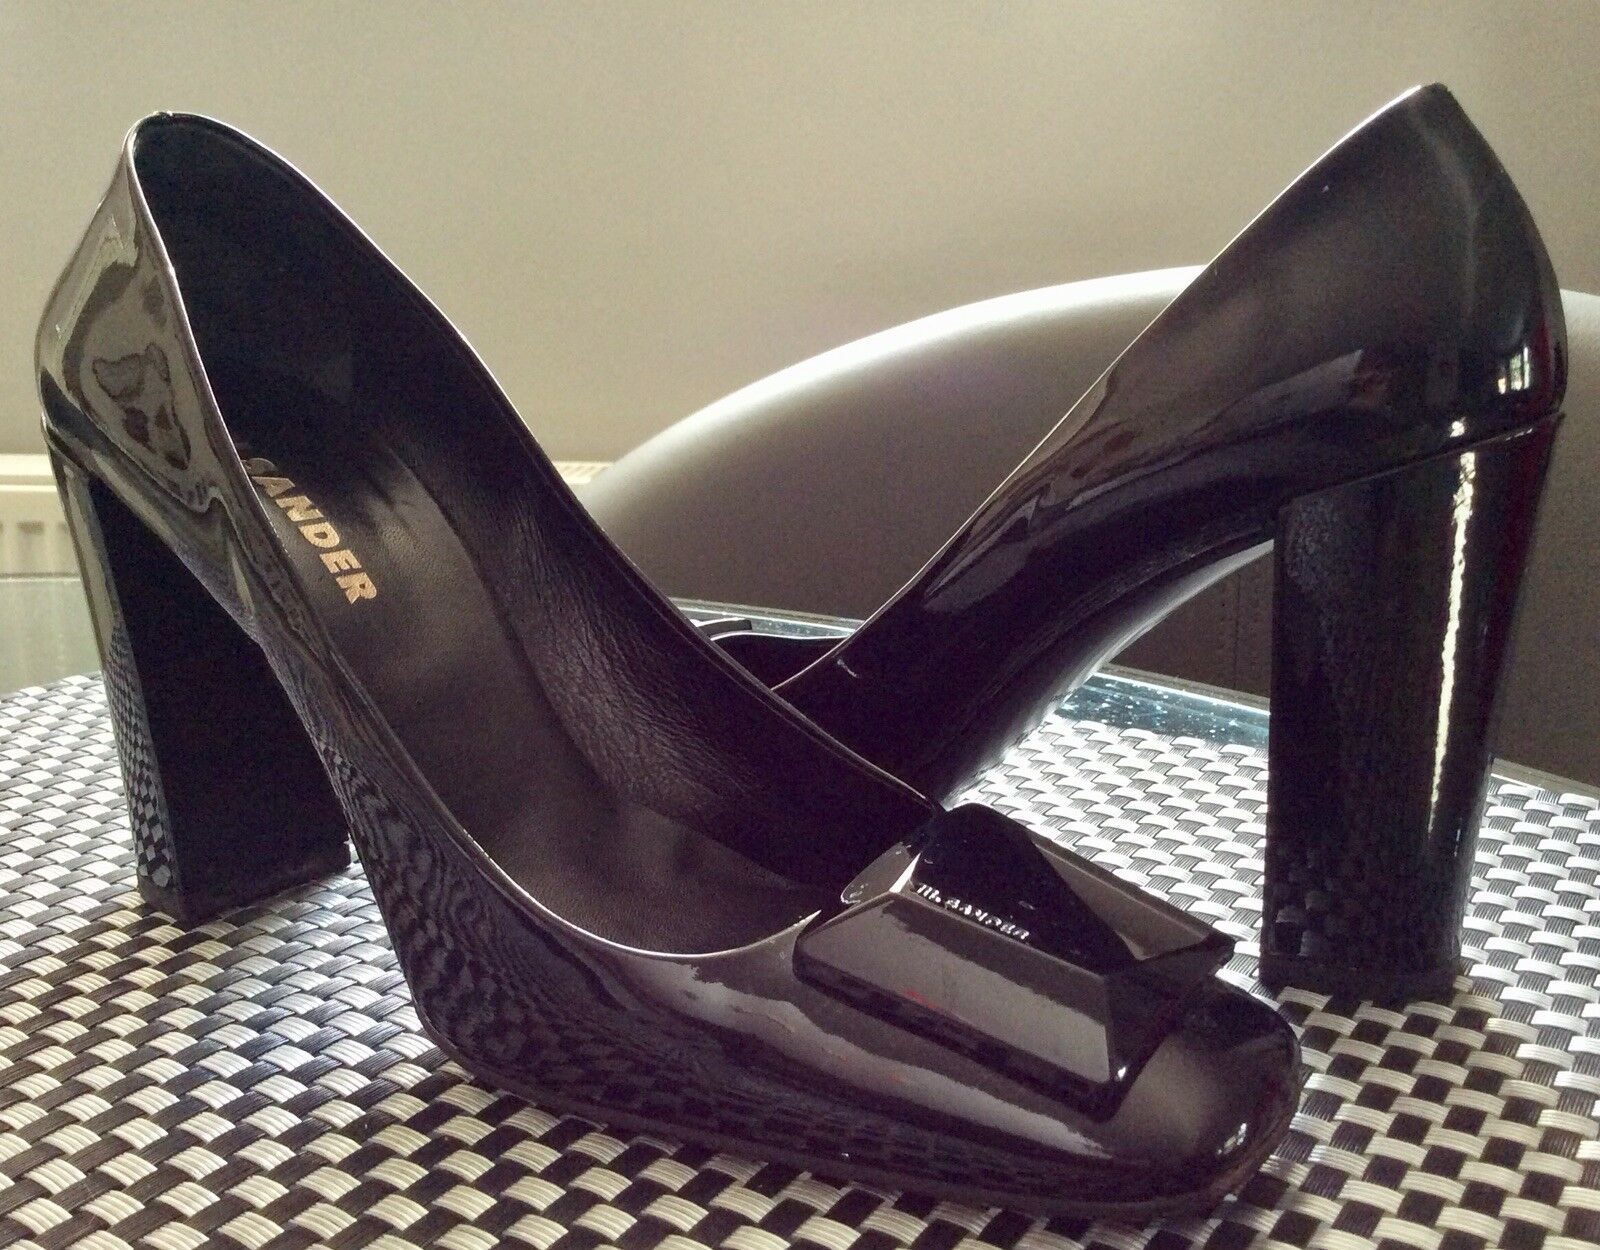 Man/Woman Jil Sander Black Patent Leather Heels Fine workmanship stable stable workmanship quality Modern mode d99648